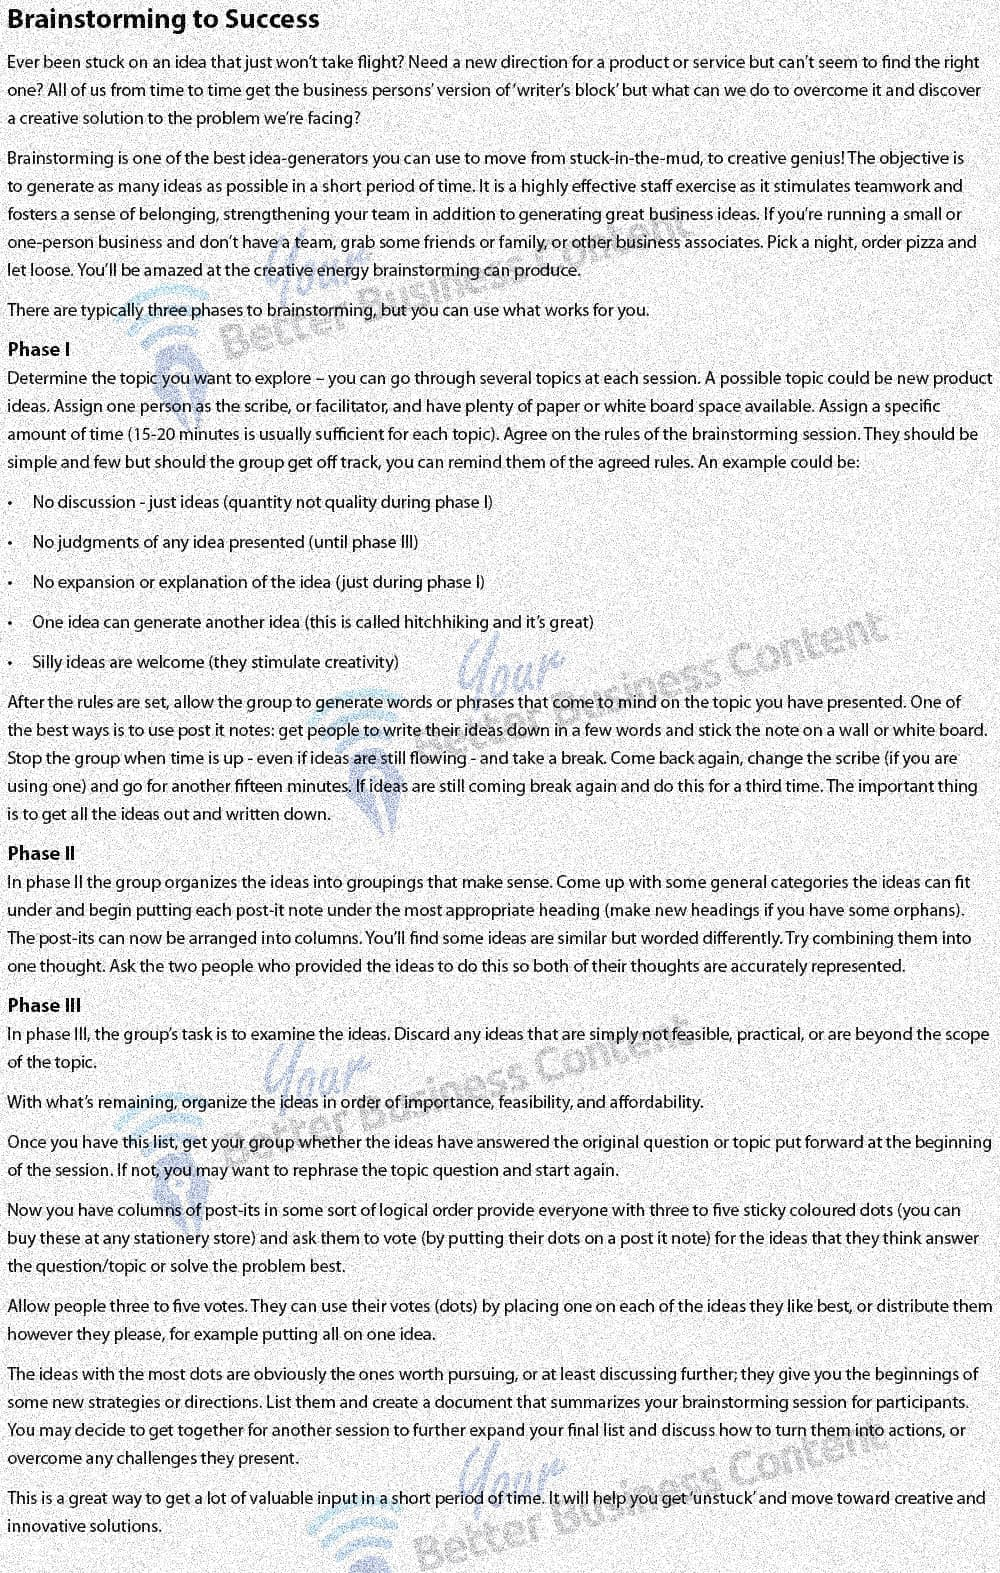 cr-09-16-001-brainstorming_to_success